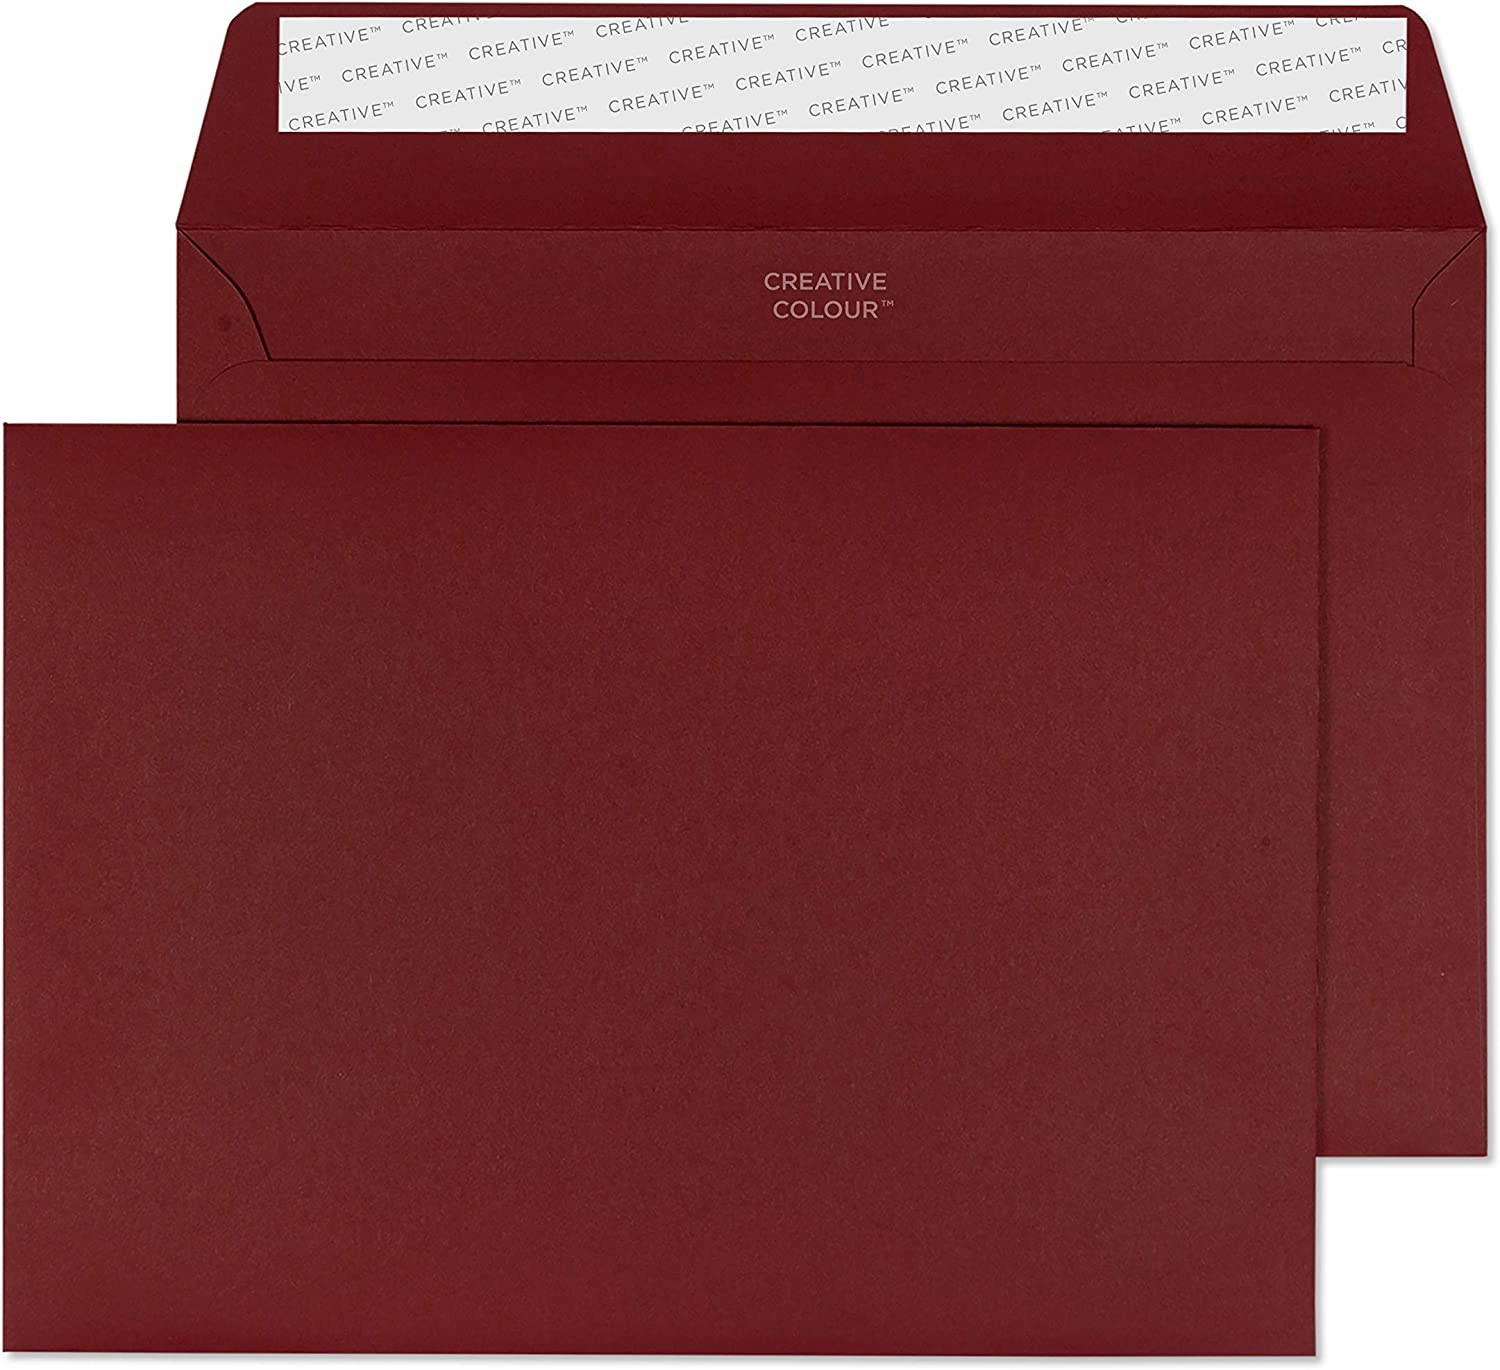 45456 Assorted Pastel Colours Pack of 25 Blake Creative Colour C5 162 x 229 mm 120 gsm Peel /& Seal Wallet Envelopes